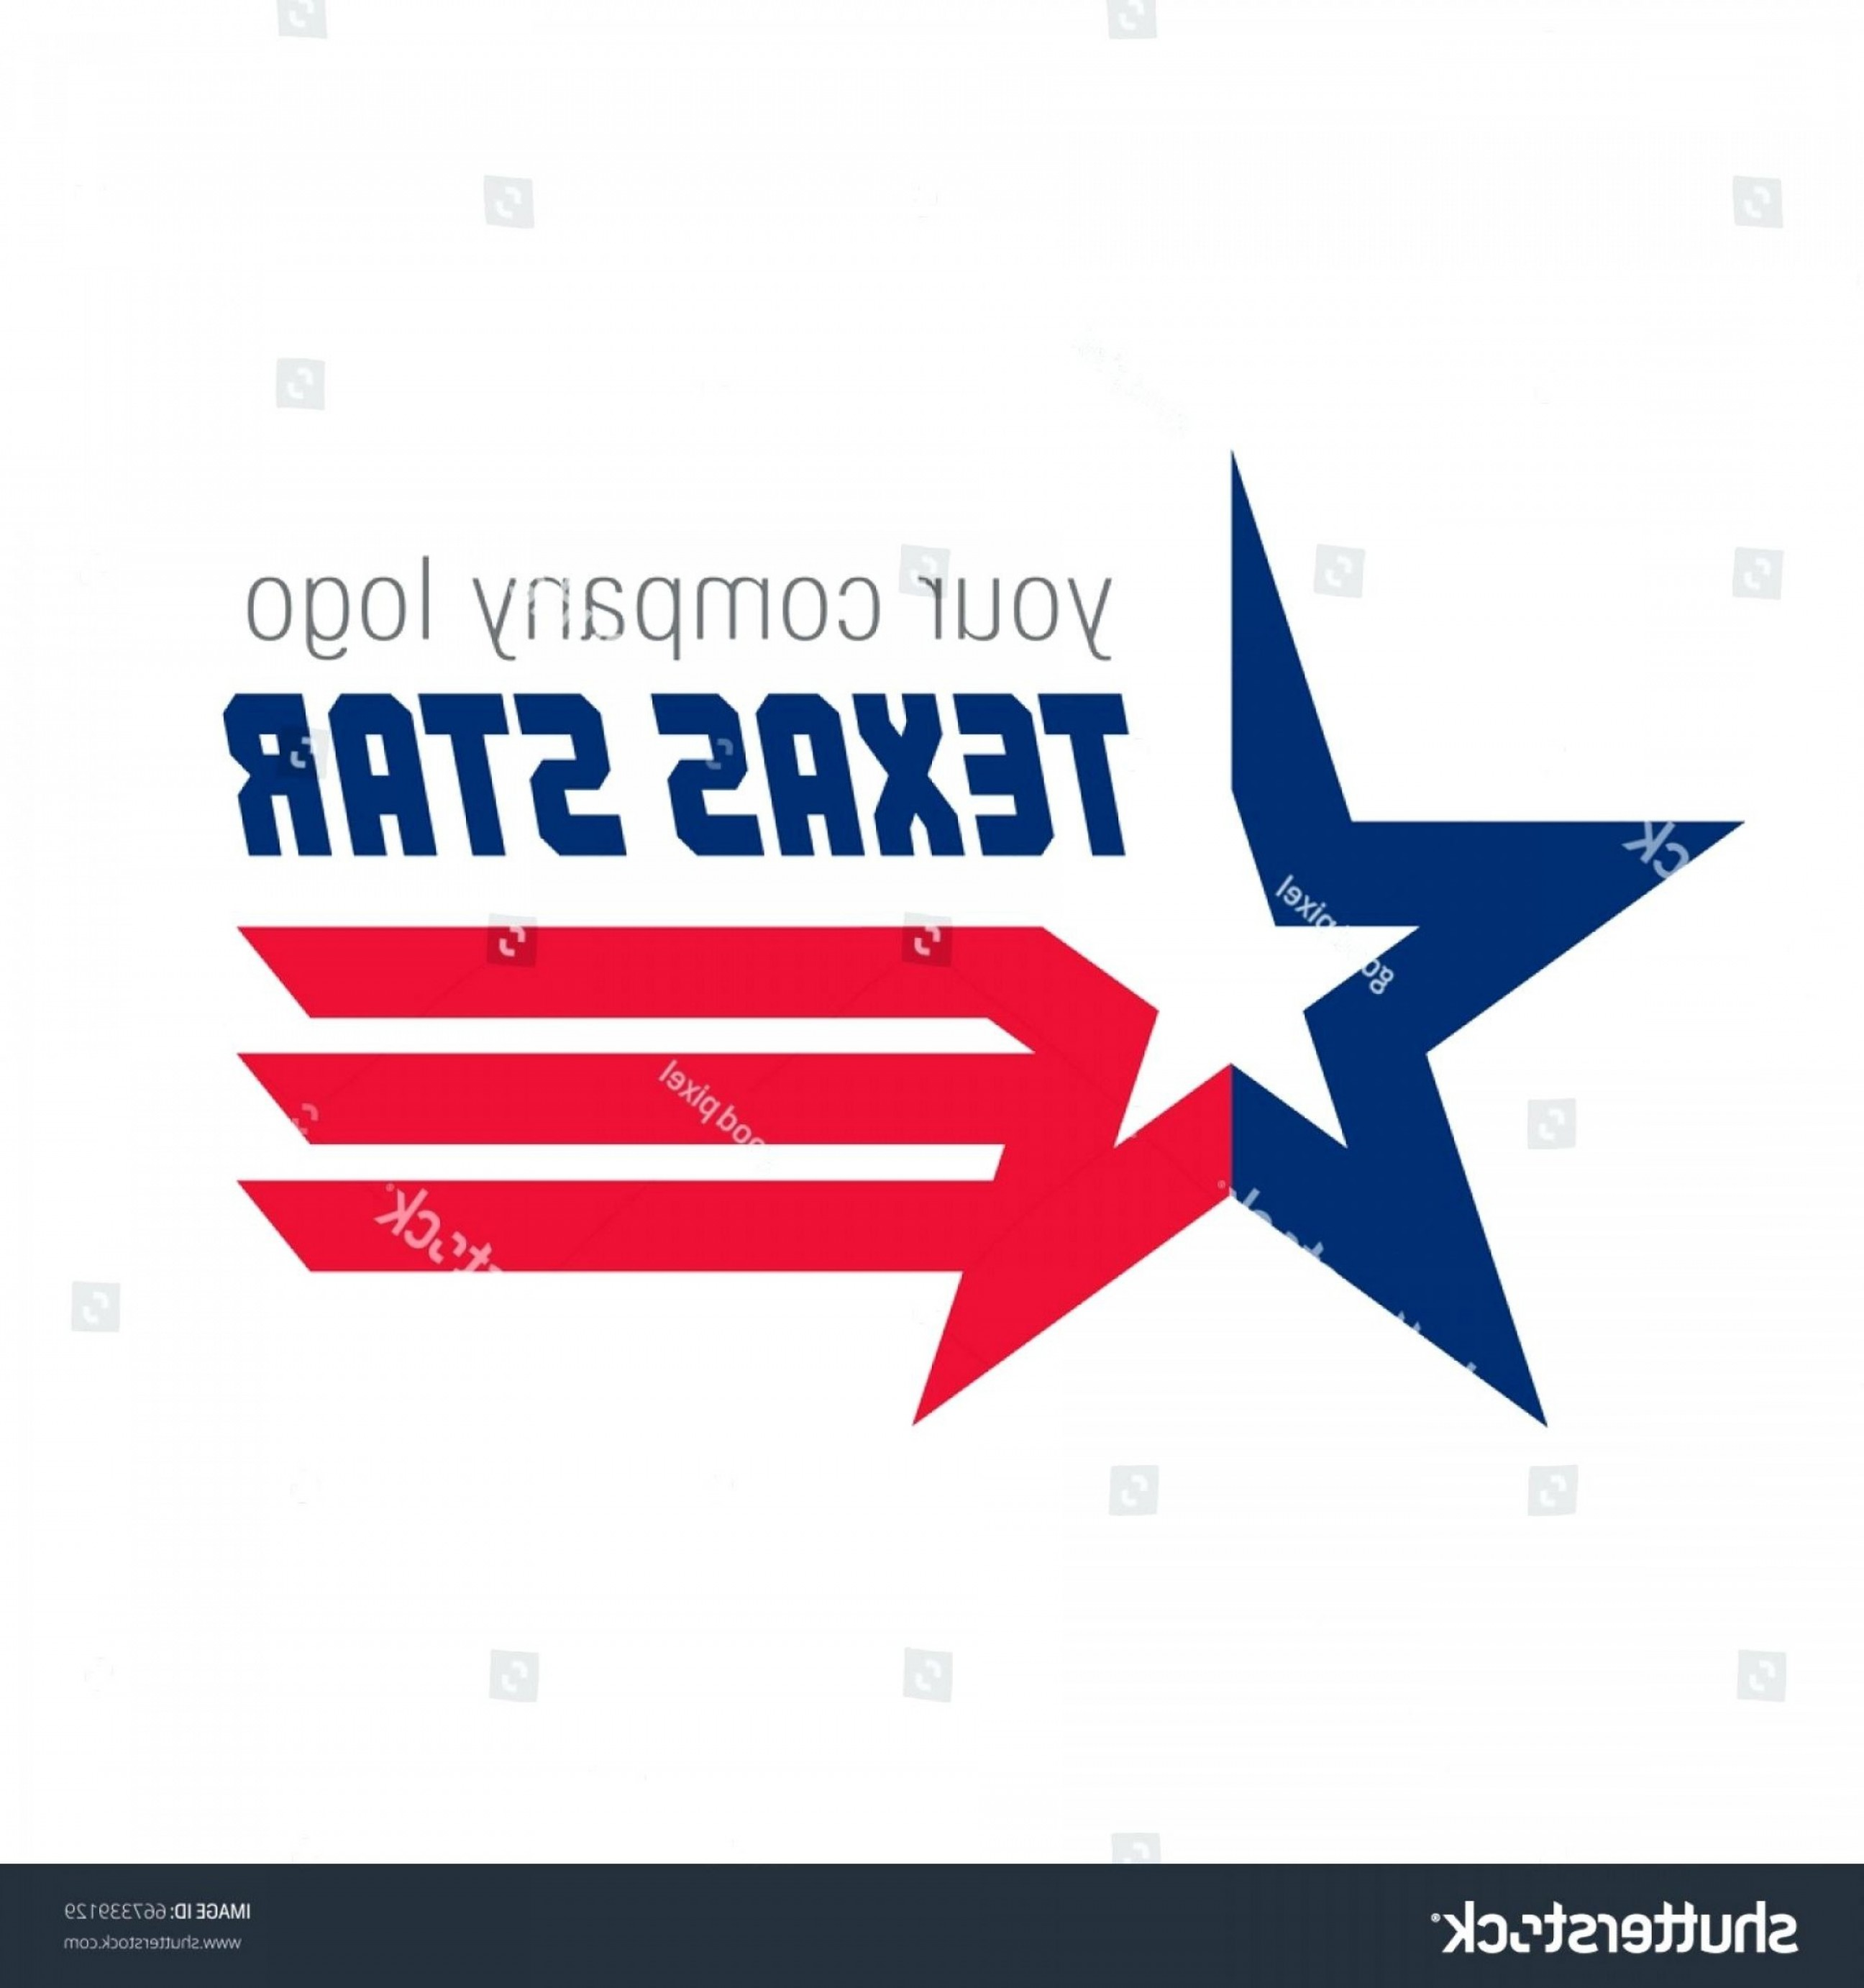 Houston Texans Lettering Logo Vector: Colors Of The Texas Flag On The Republic Of Adopted The Lone Star Flag That Flagstone Colors Texas